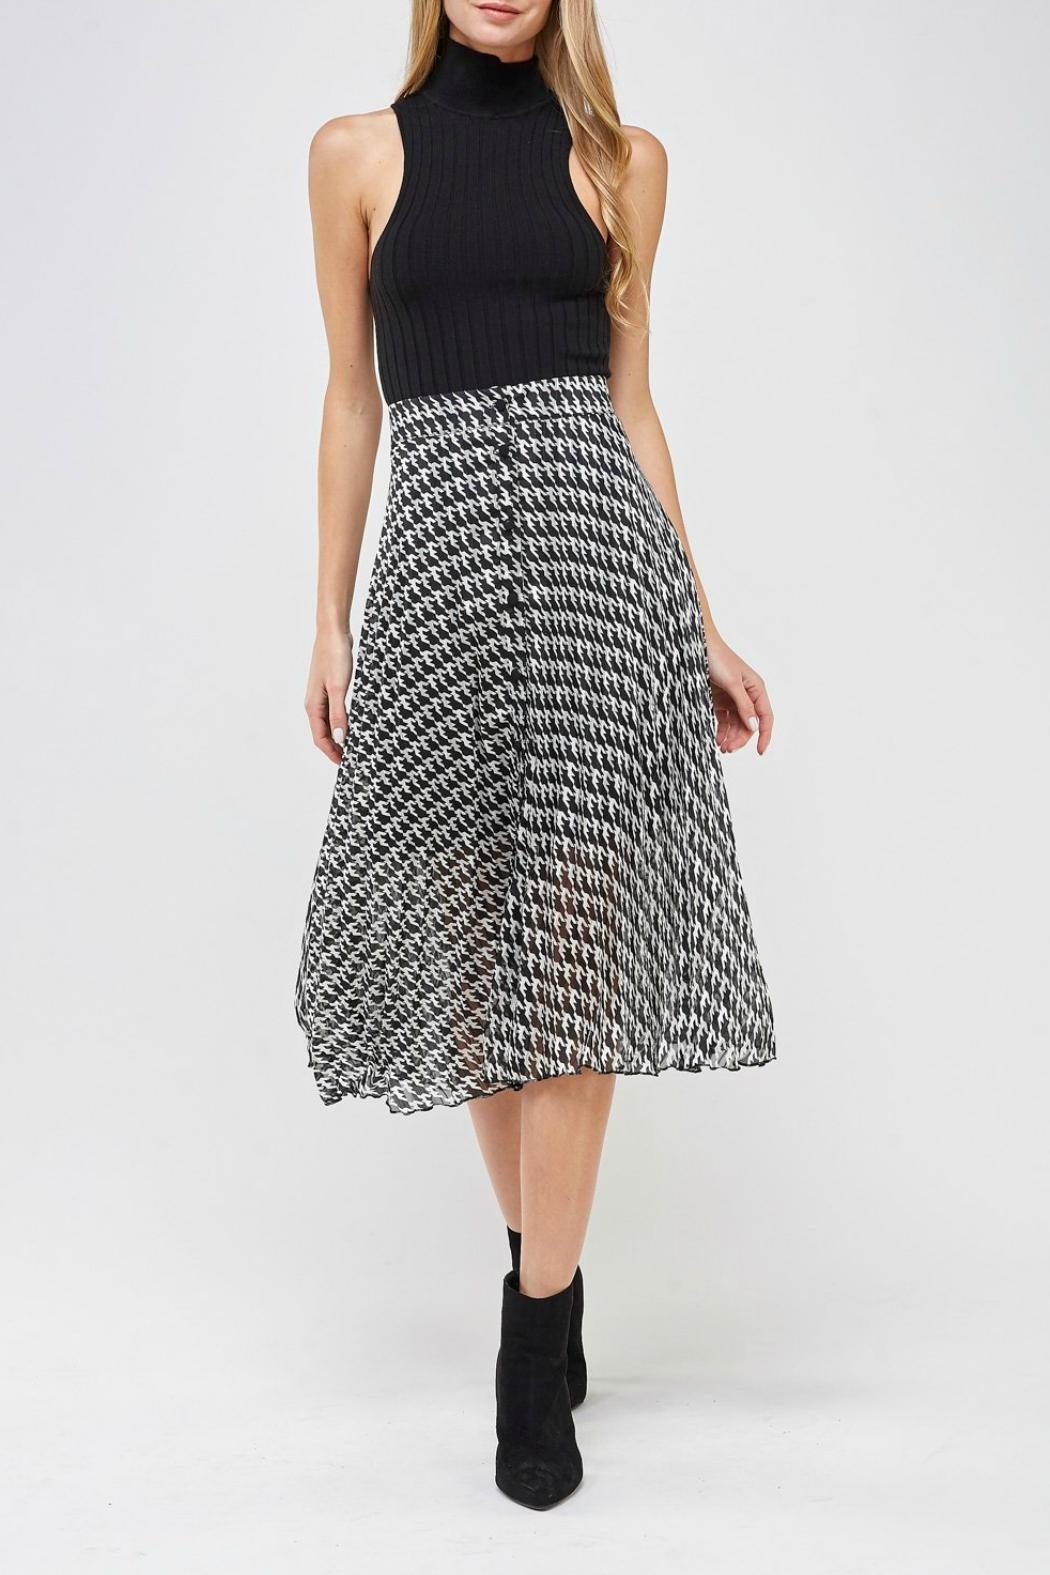 Miss Love Printed High-Waist Skirt - Back Cropped Image